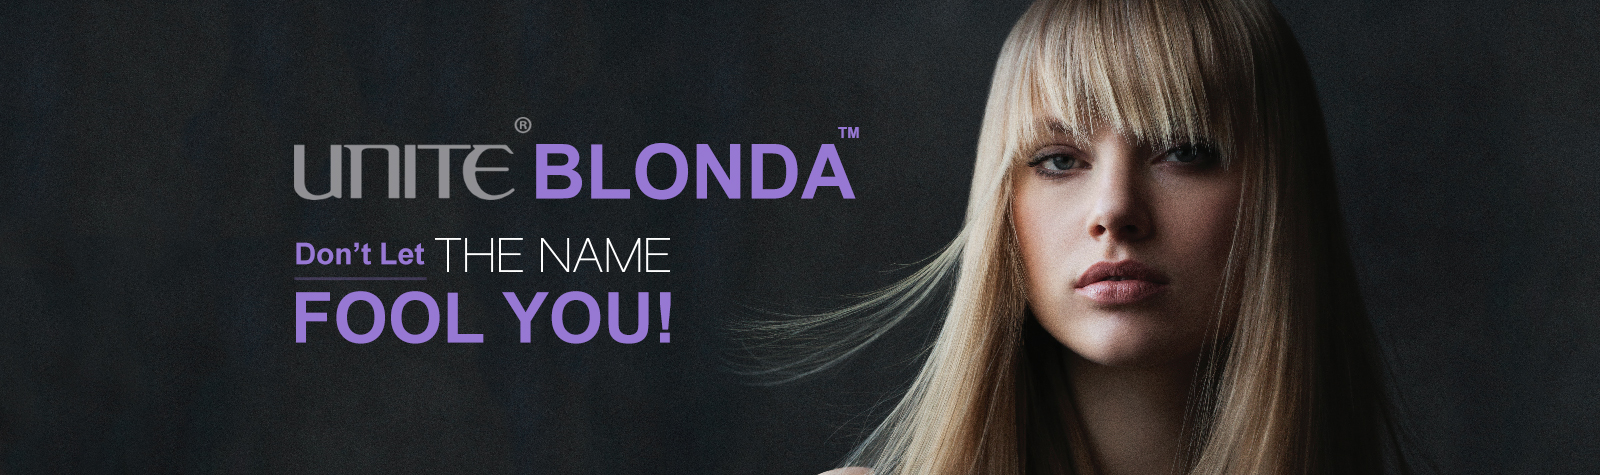 Unite Blonda Shampoo & Conditioner